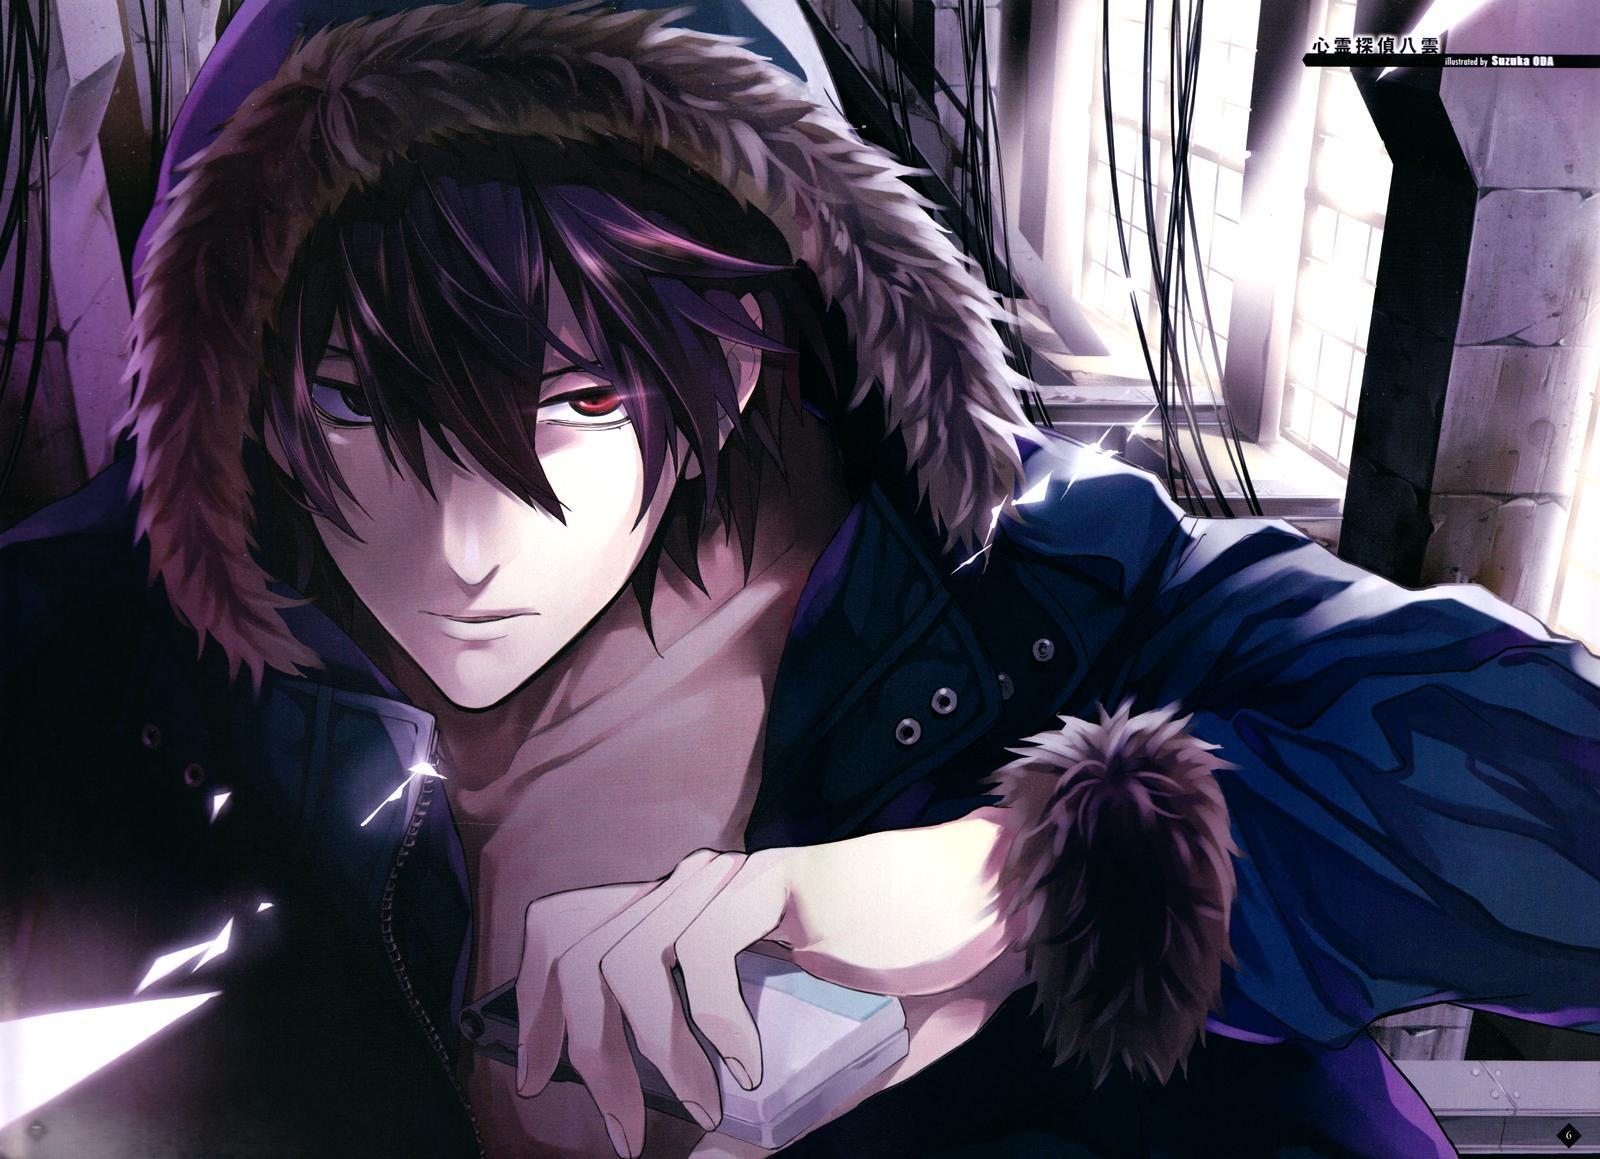 Download Anime Dj Boy Wallpaper Hd Pictures  Hd Wallpapers Amagico